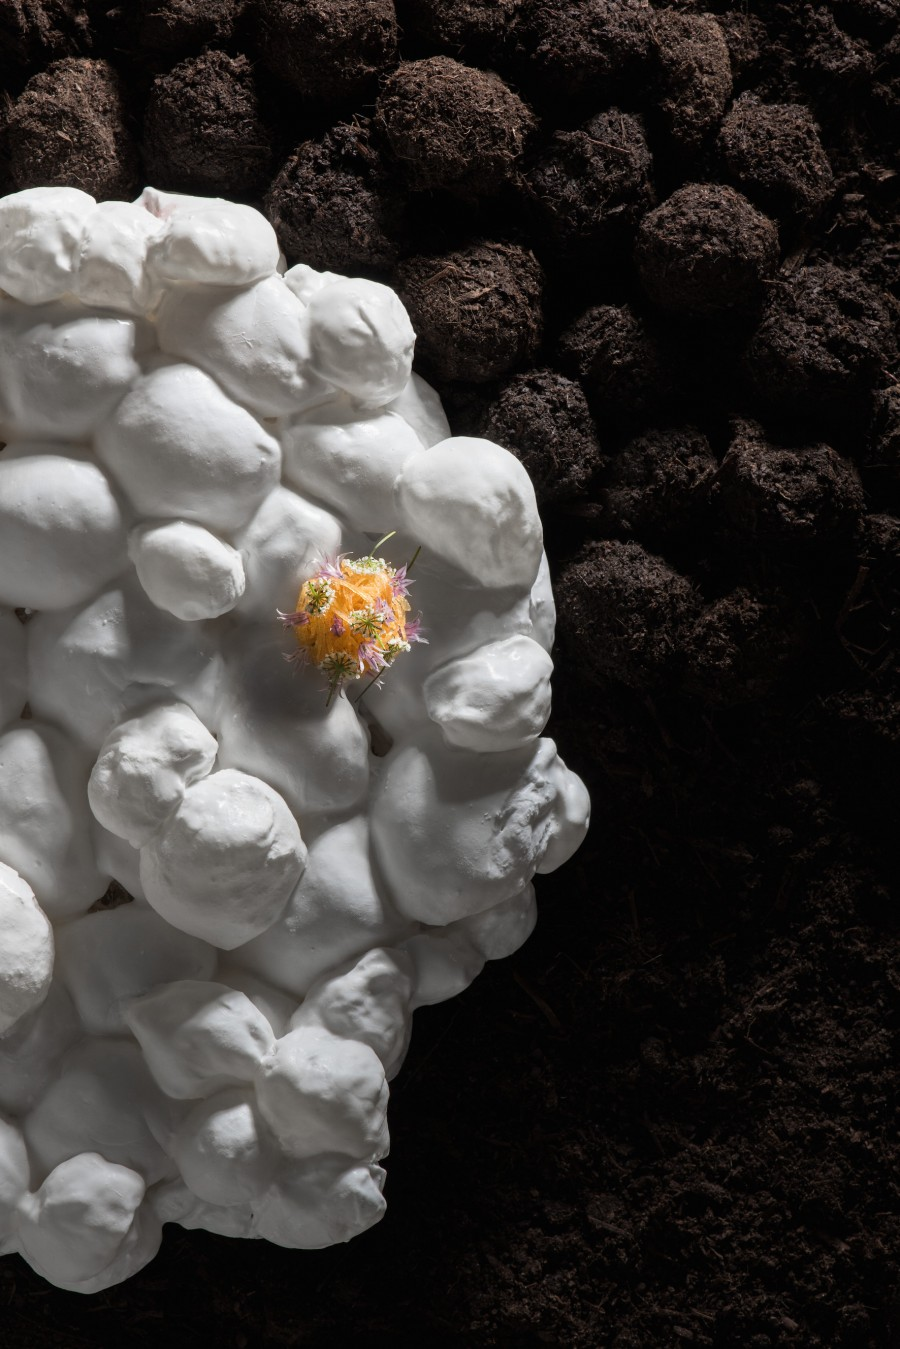 ball of flowers and herbs served on a marshmallow plate by Aino Nebel